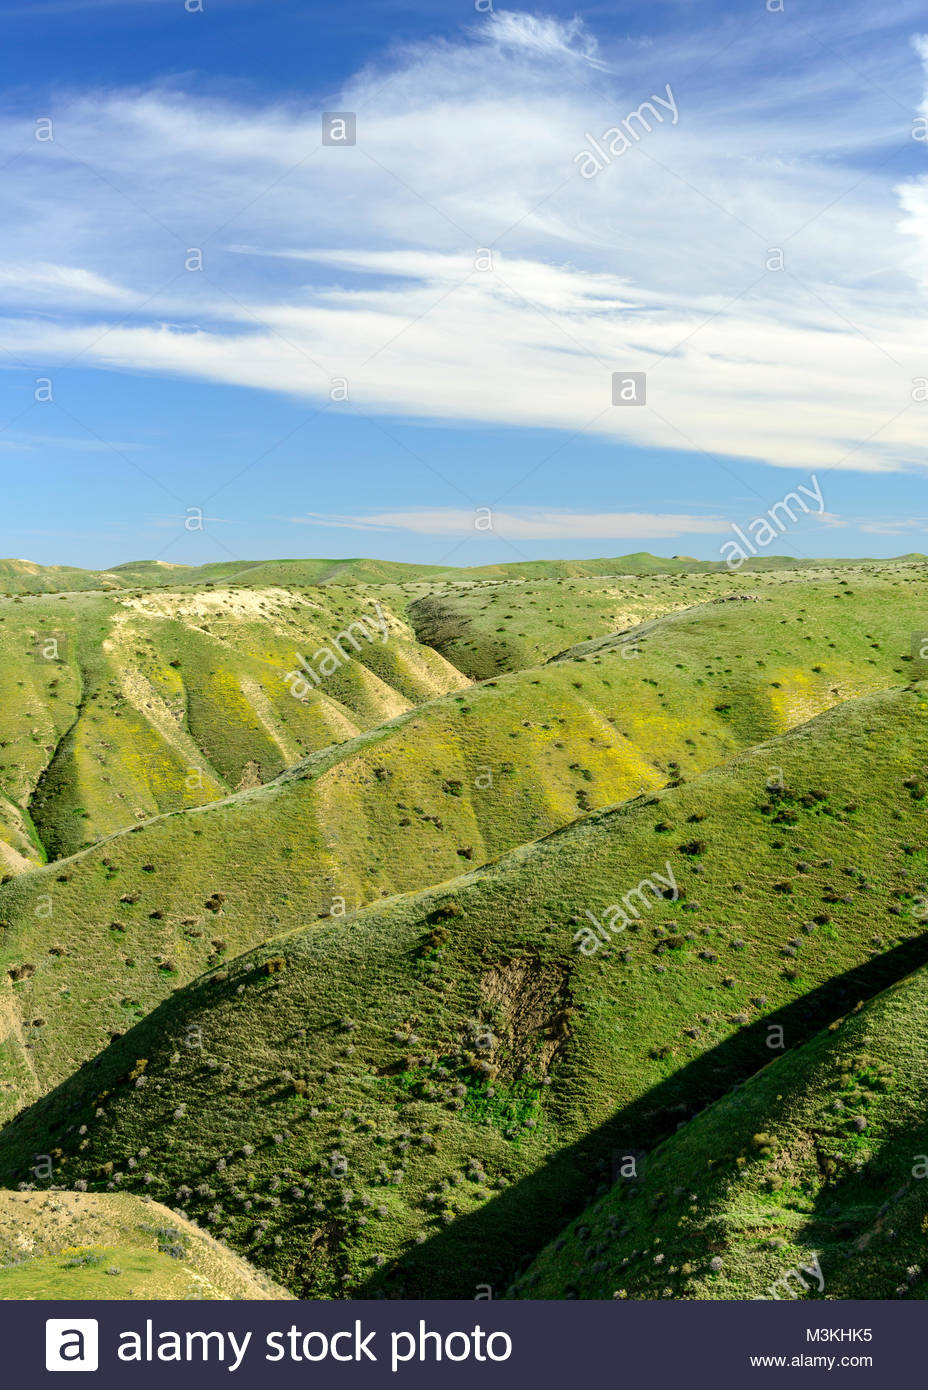 Panoche Hills Wilderness Study Area in Spring, Fresno County, California - Stock Image